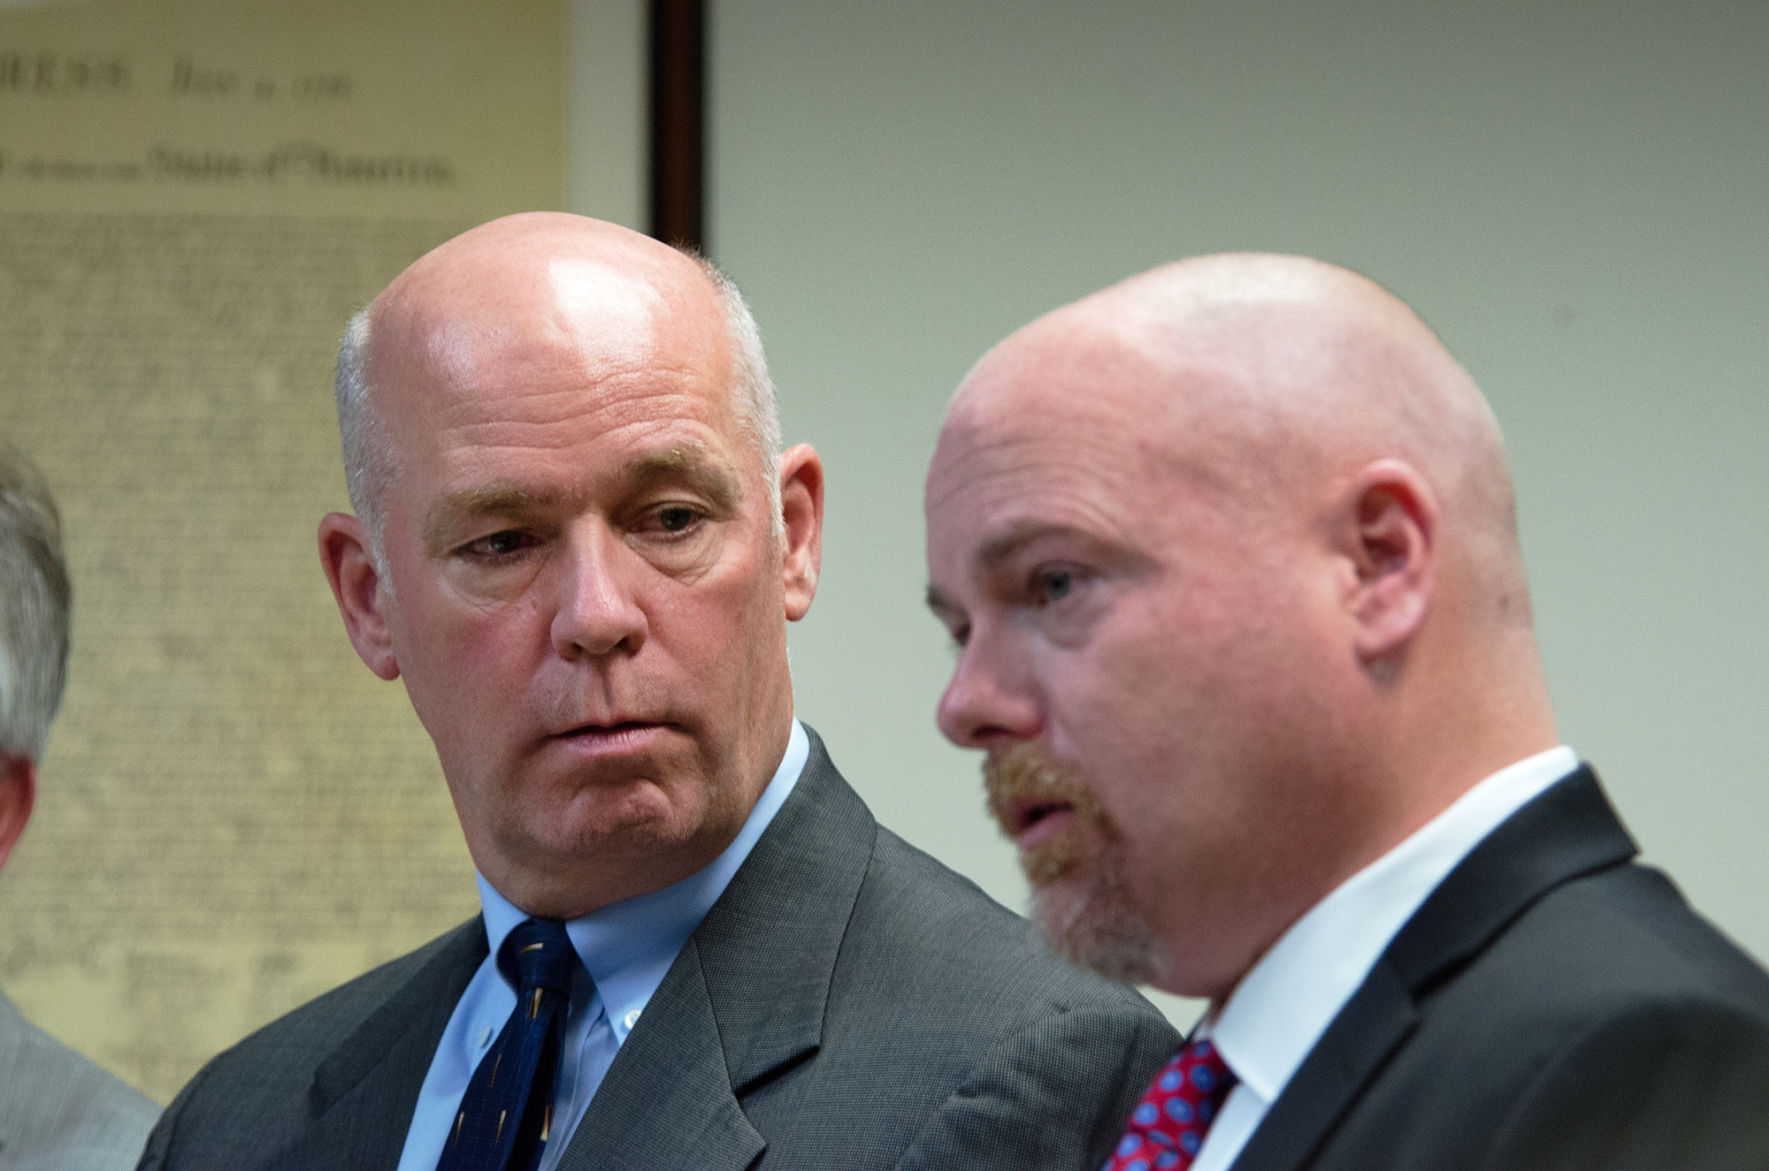 Greg Gianforte to get mugshot and fingerprints recording his assault case